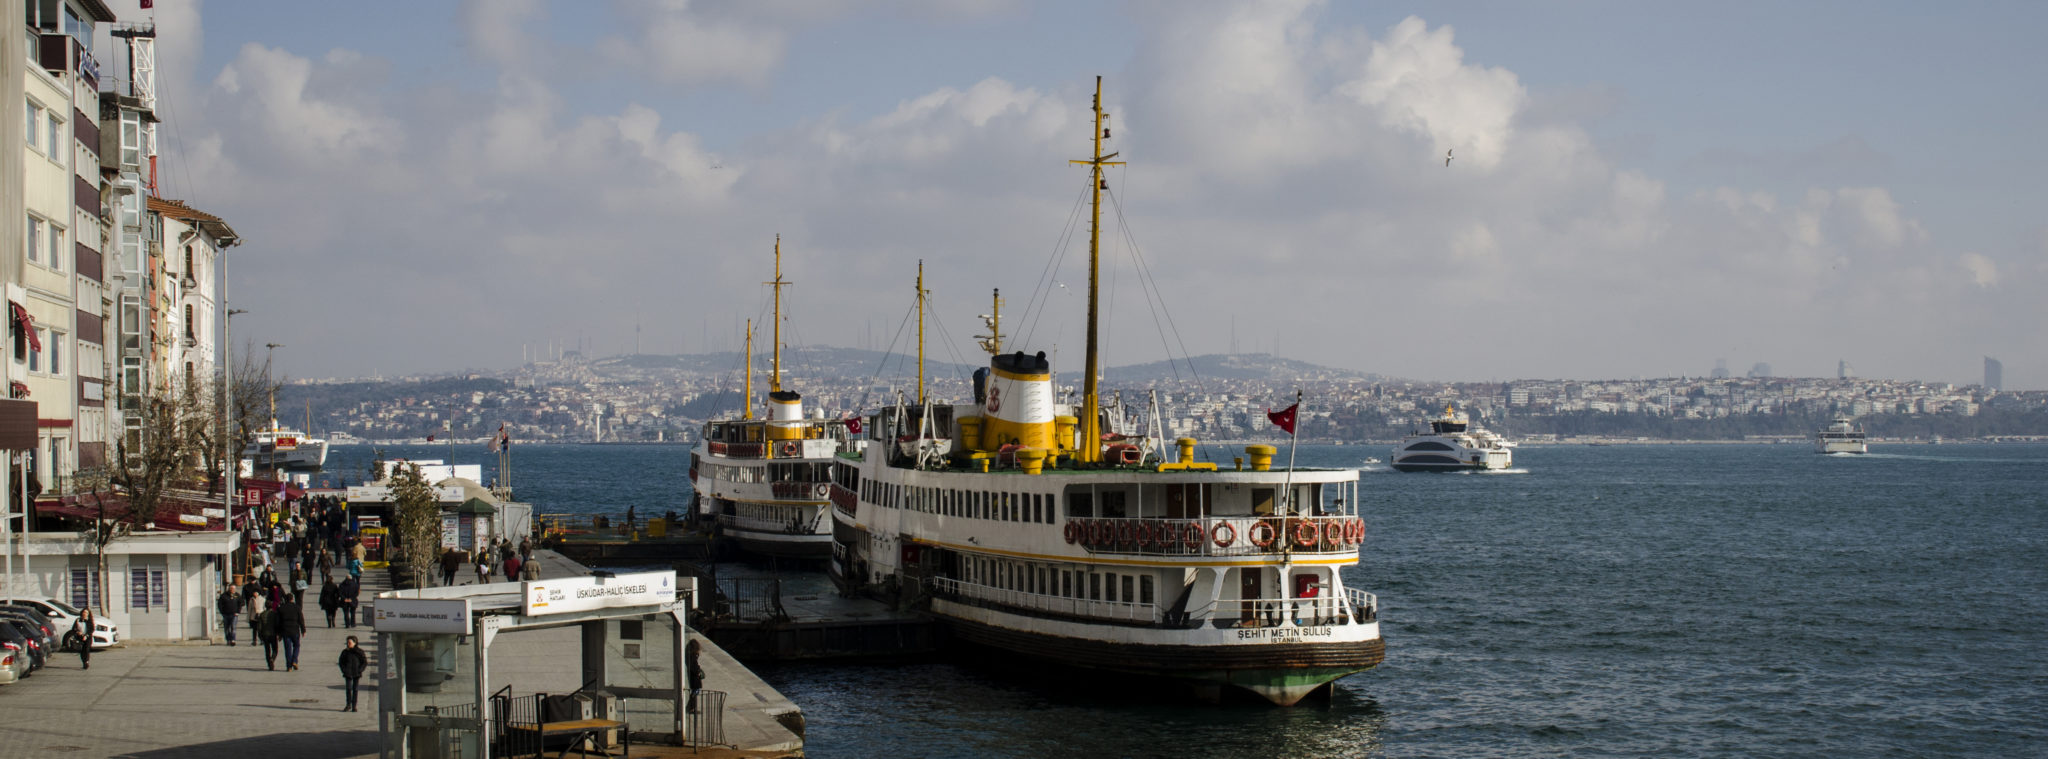 Turkish-cuisine-ferry-slider